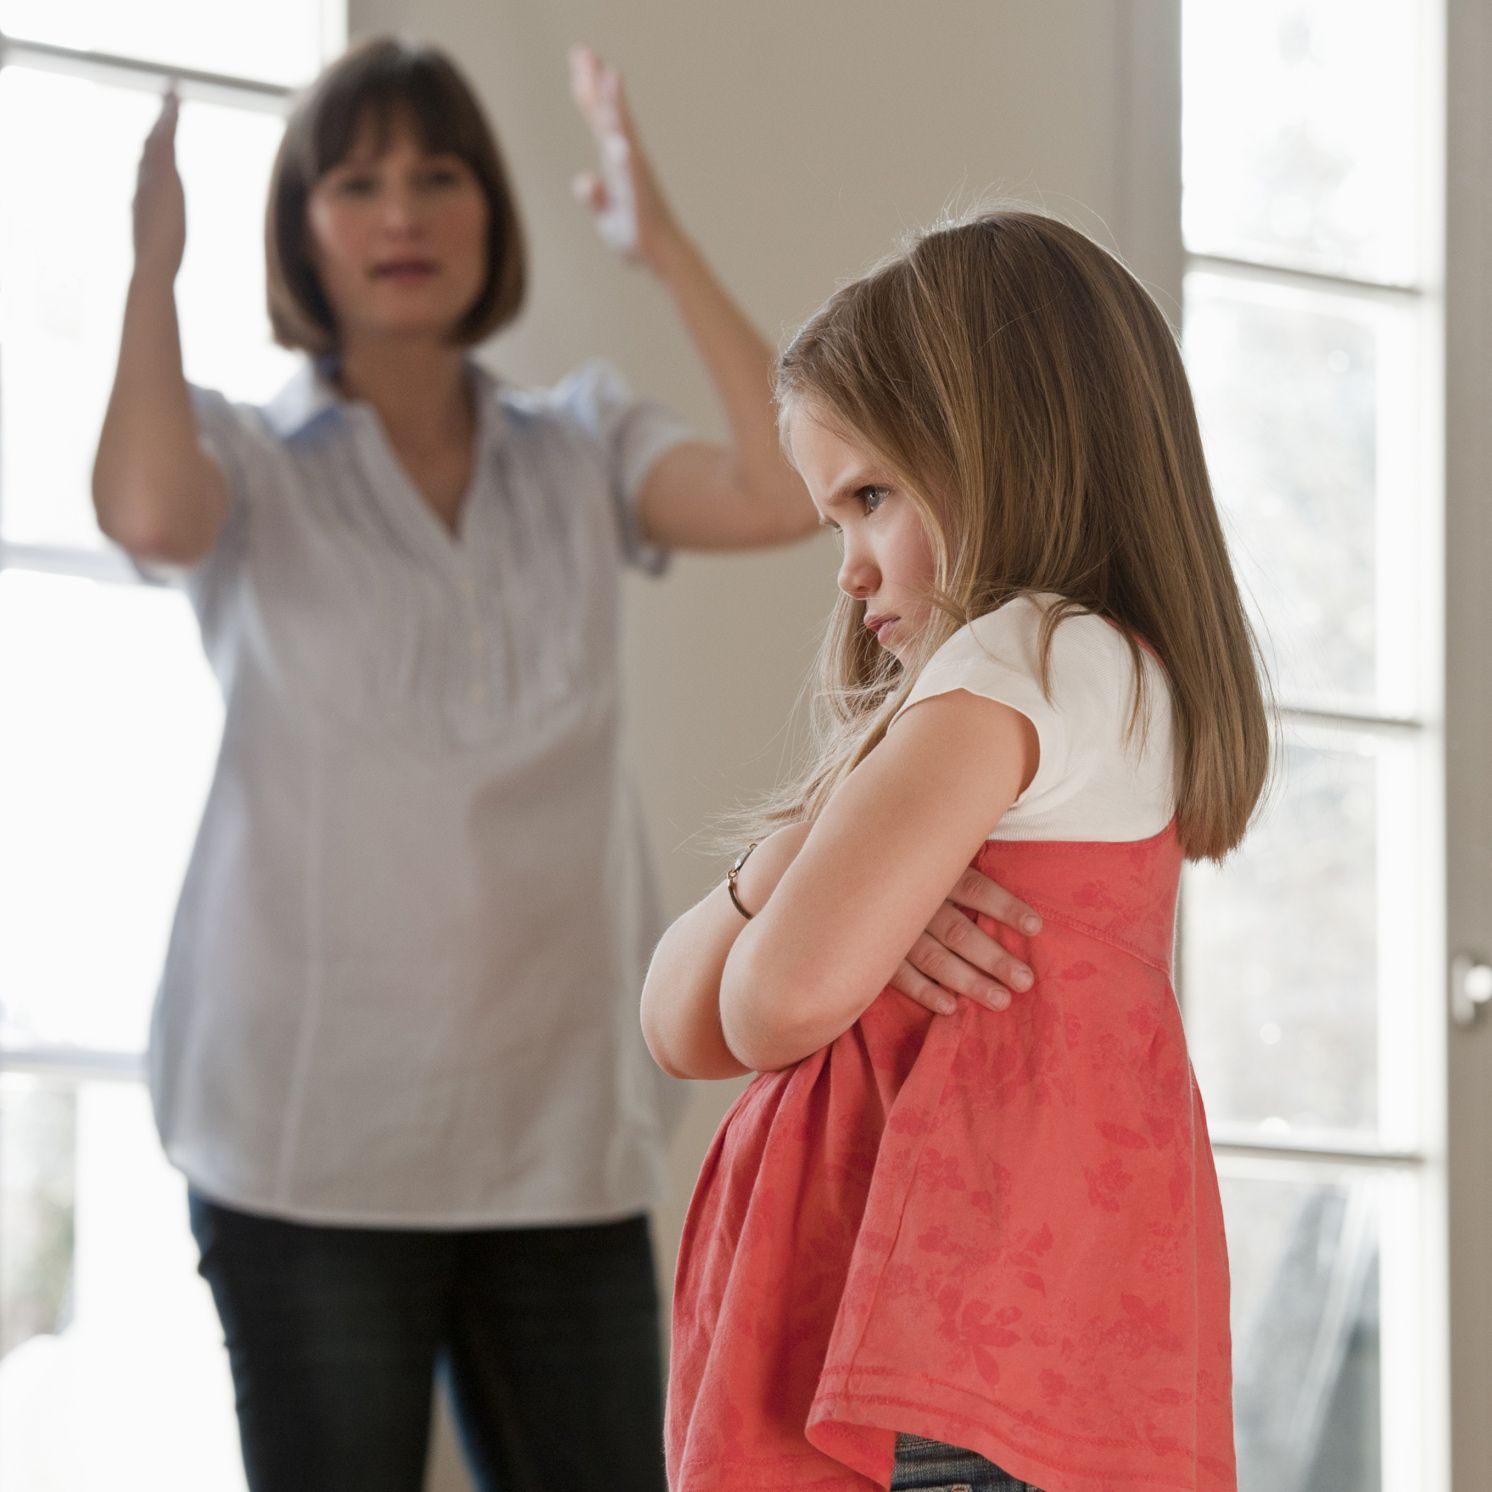 How Do You Handle A Child Saying She Hates You